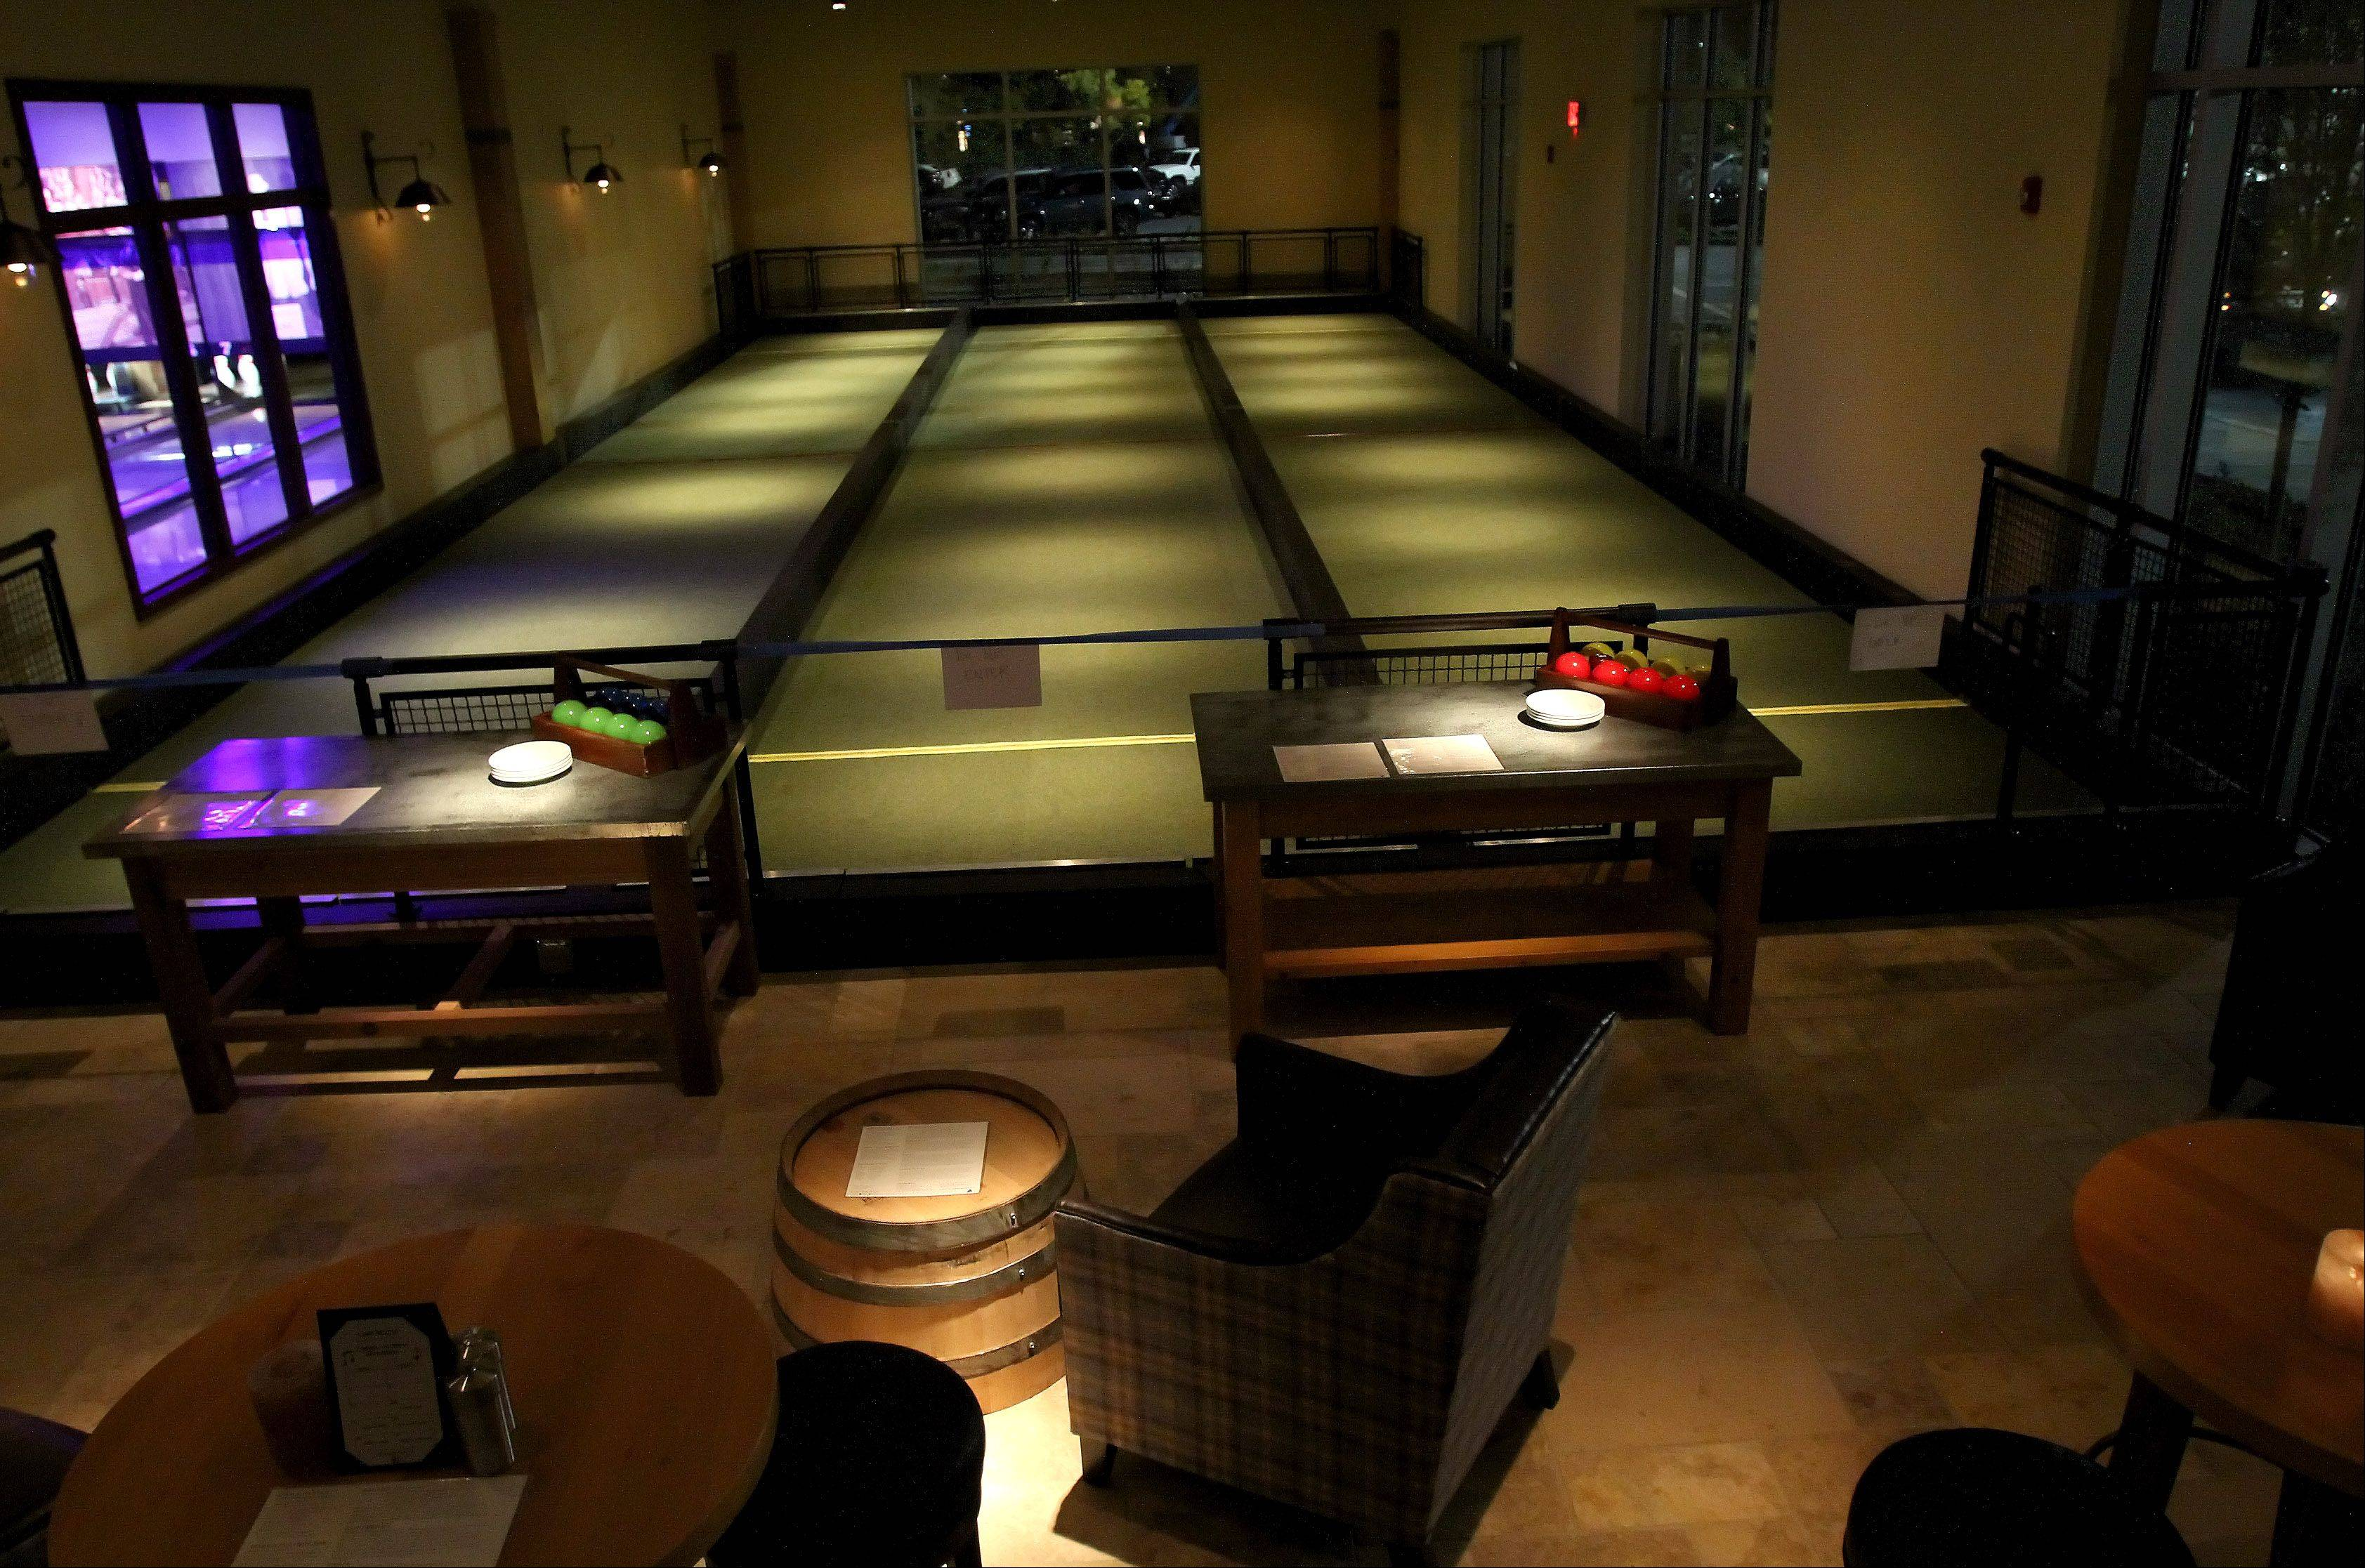 Playing bocce is one of many entertainment options at Pinstripes.